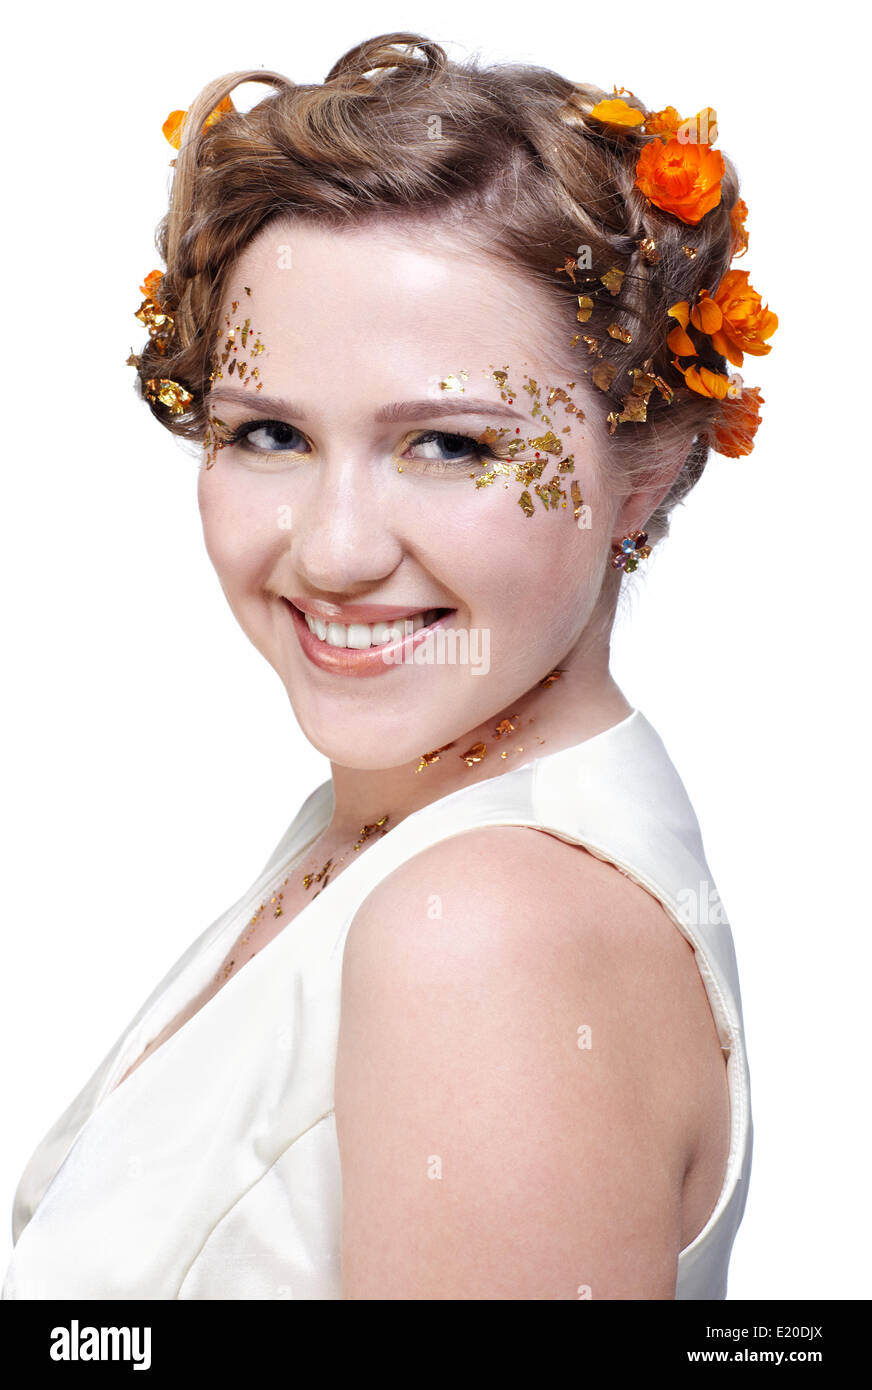 Bride´s Stock Photos & Bride´s Stock Images - Page 10 - Alamy